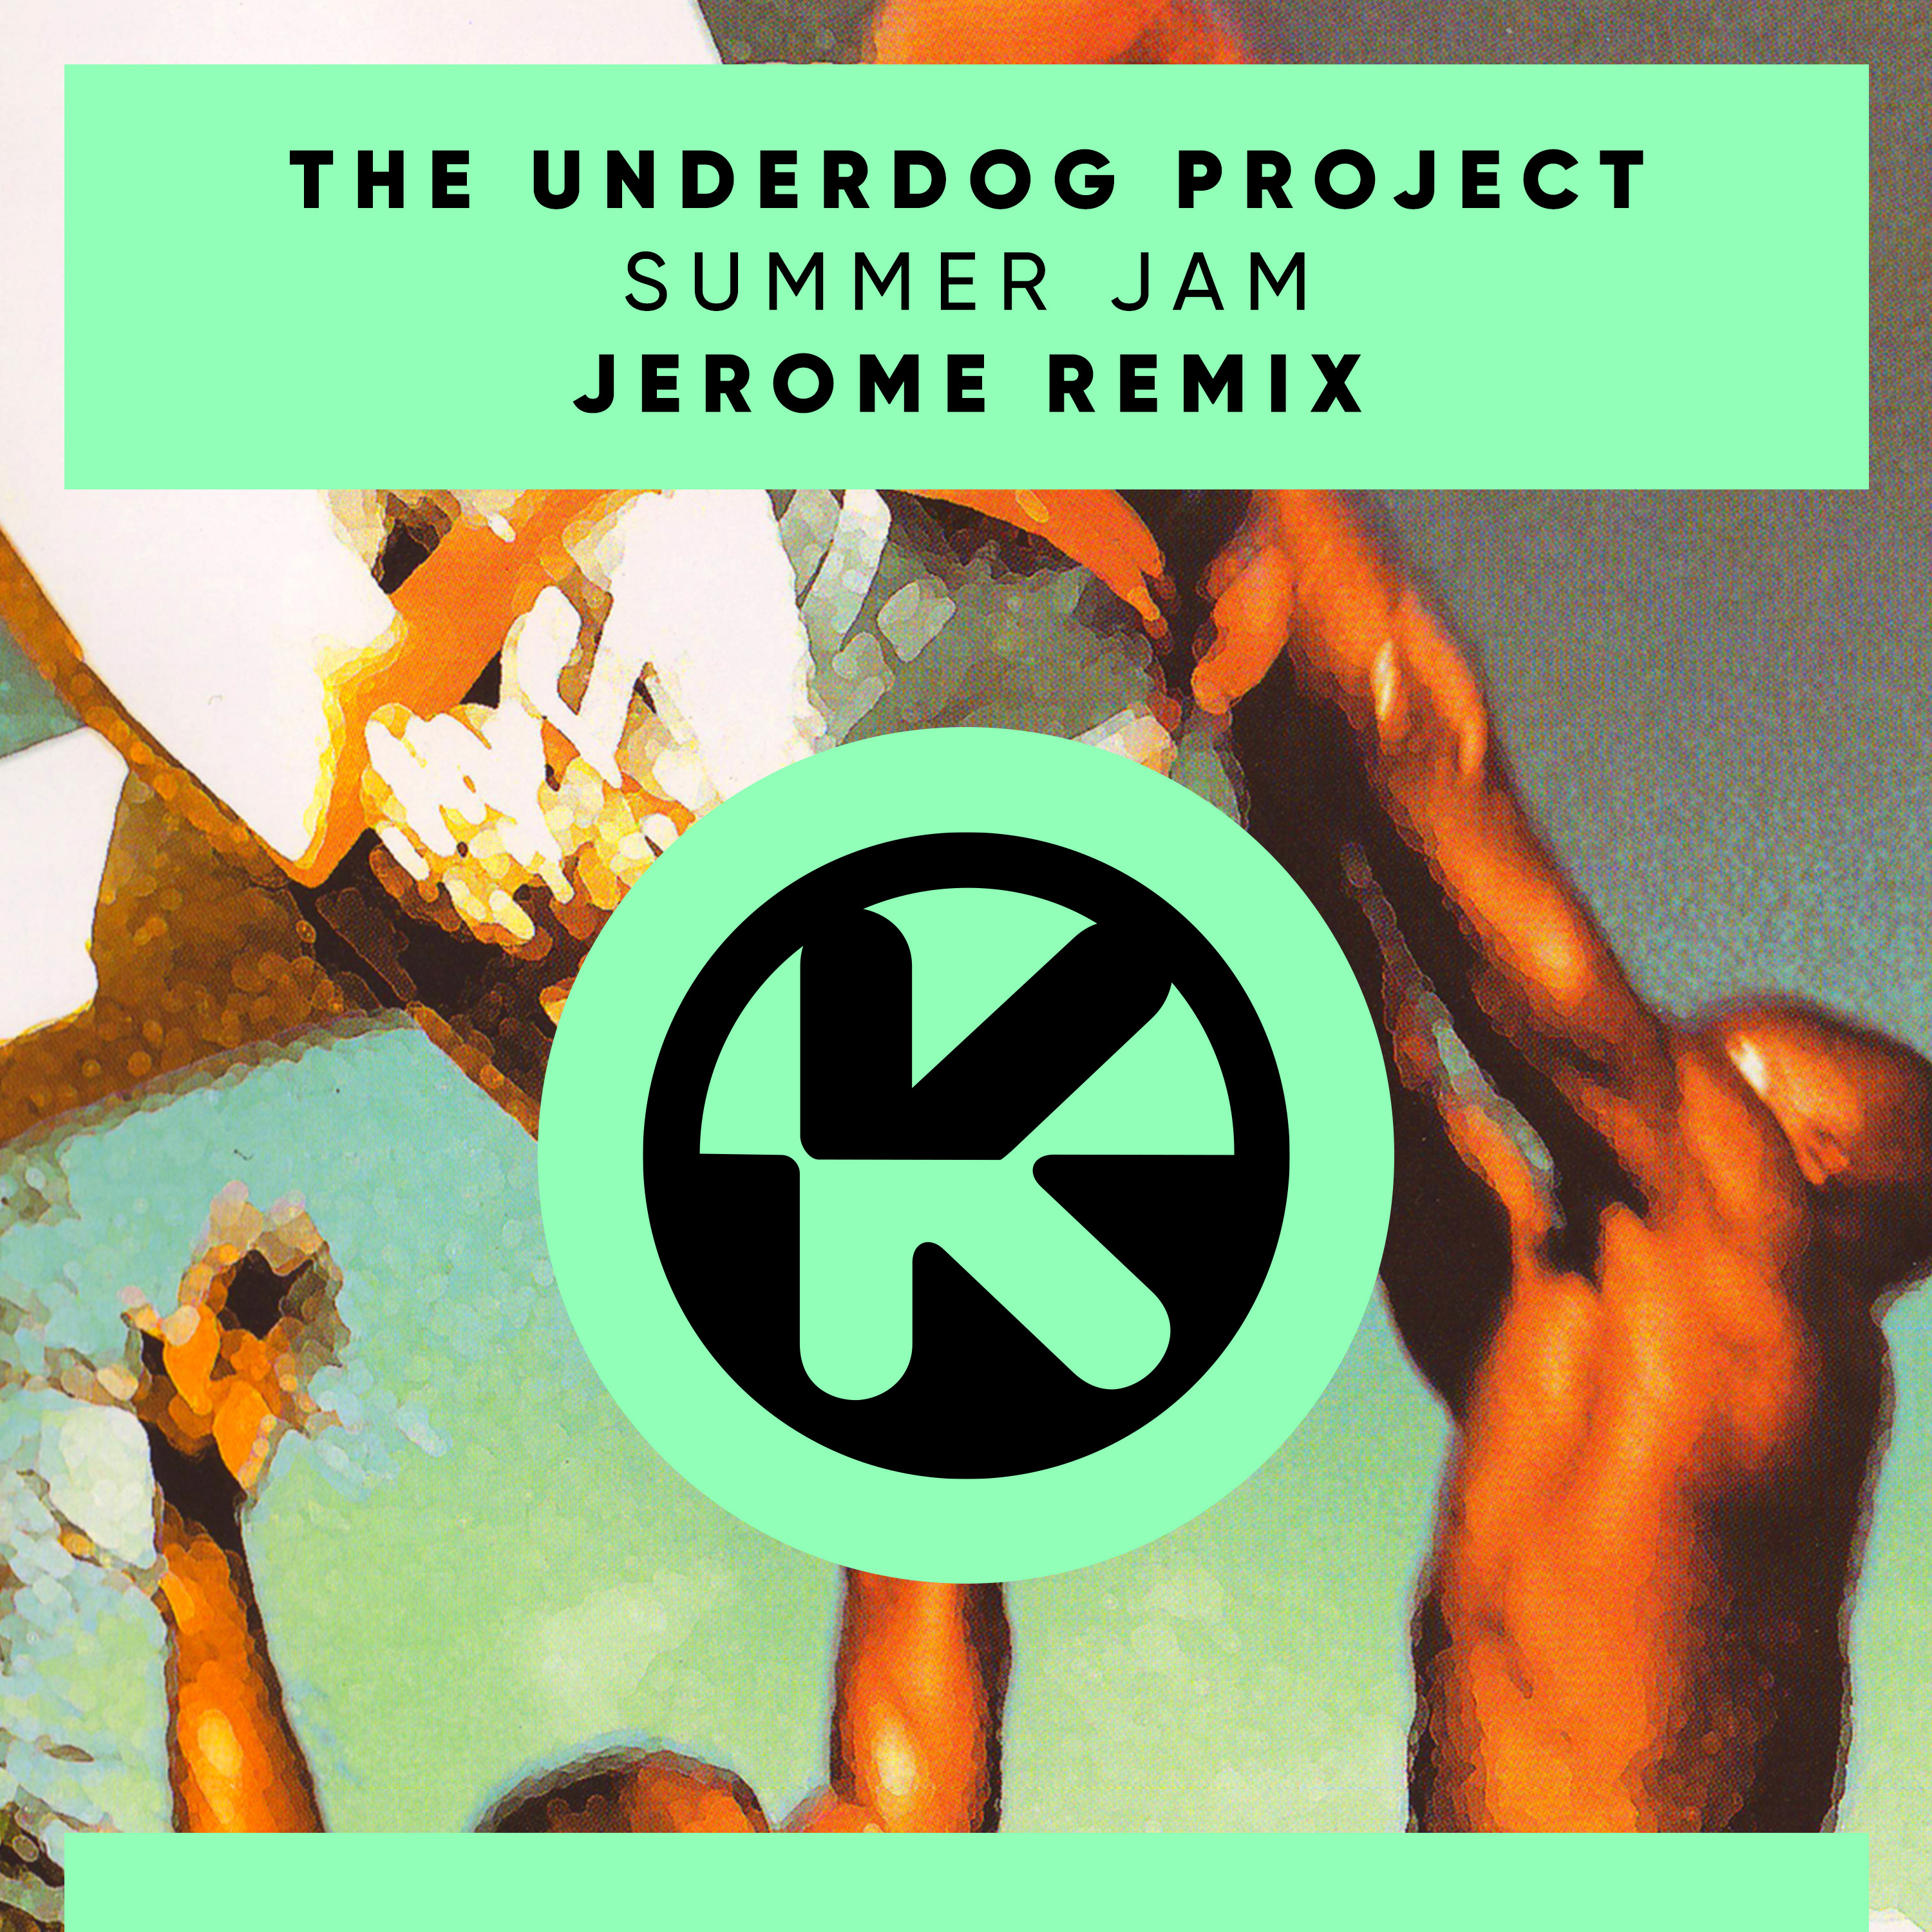 SUMMER JAM (JEROME REMIX)